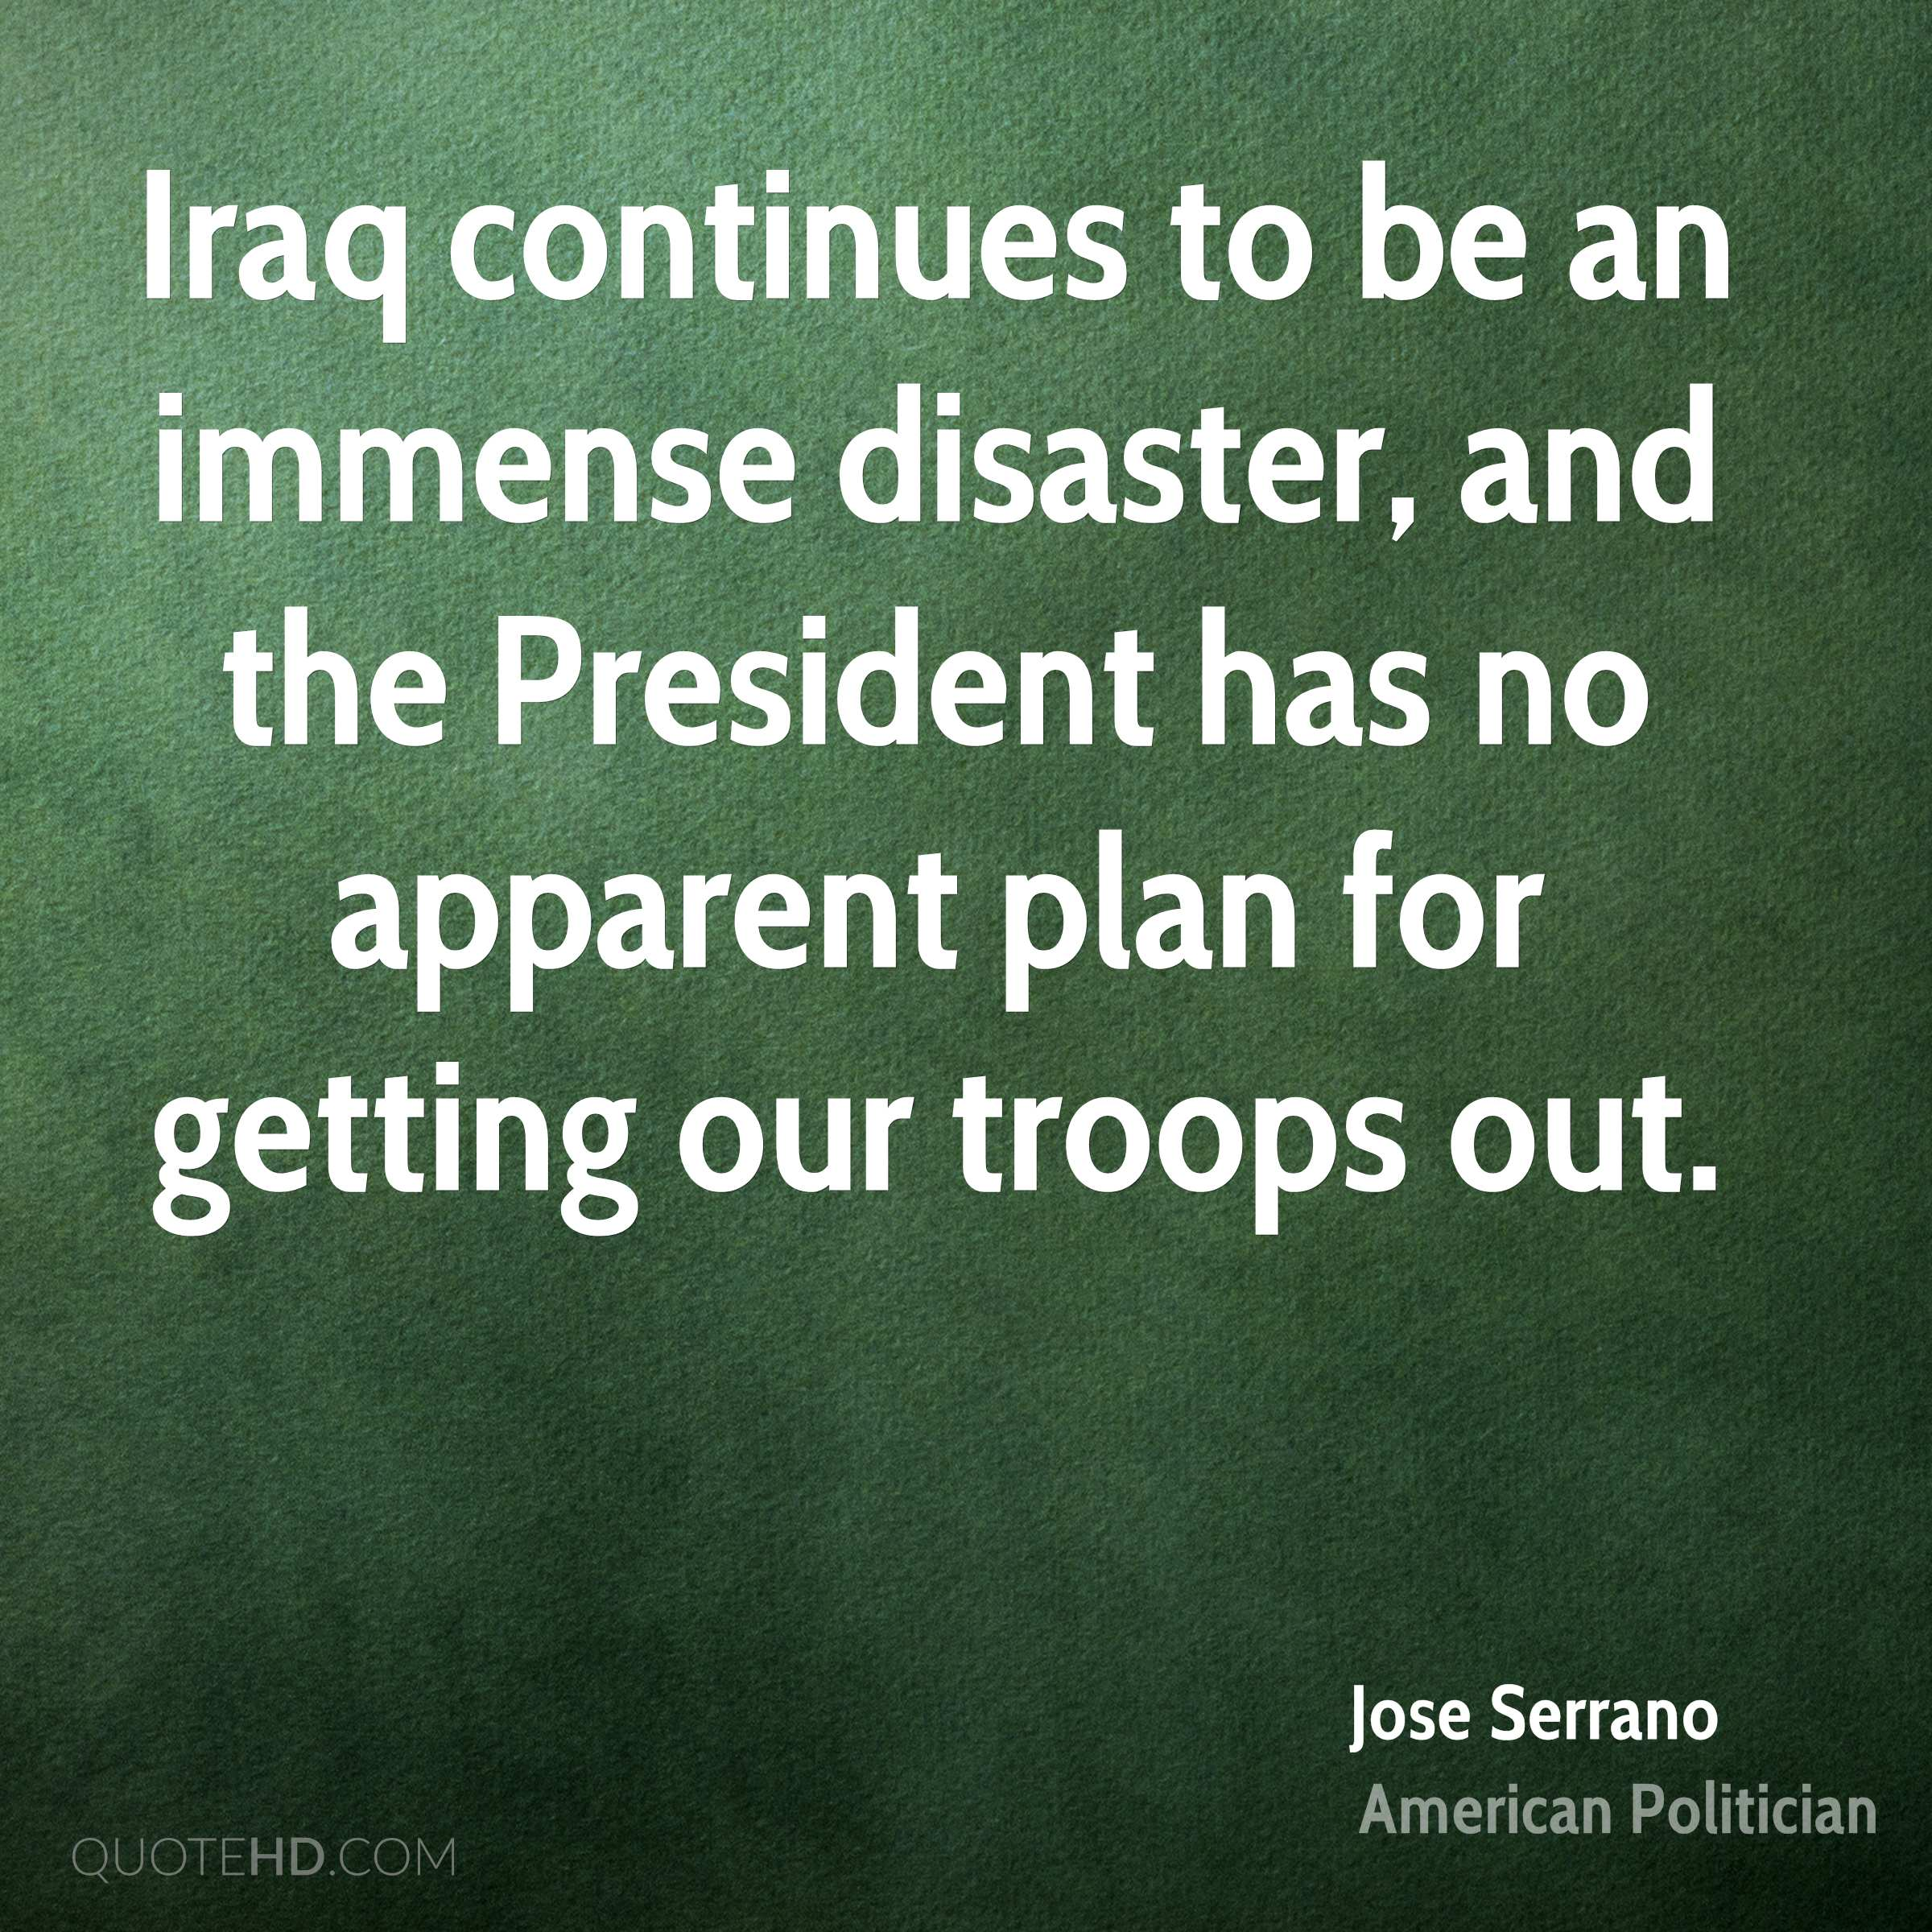 Iraq continues to be an immense disaster, and the President has no apparent plan for getting our troops out.